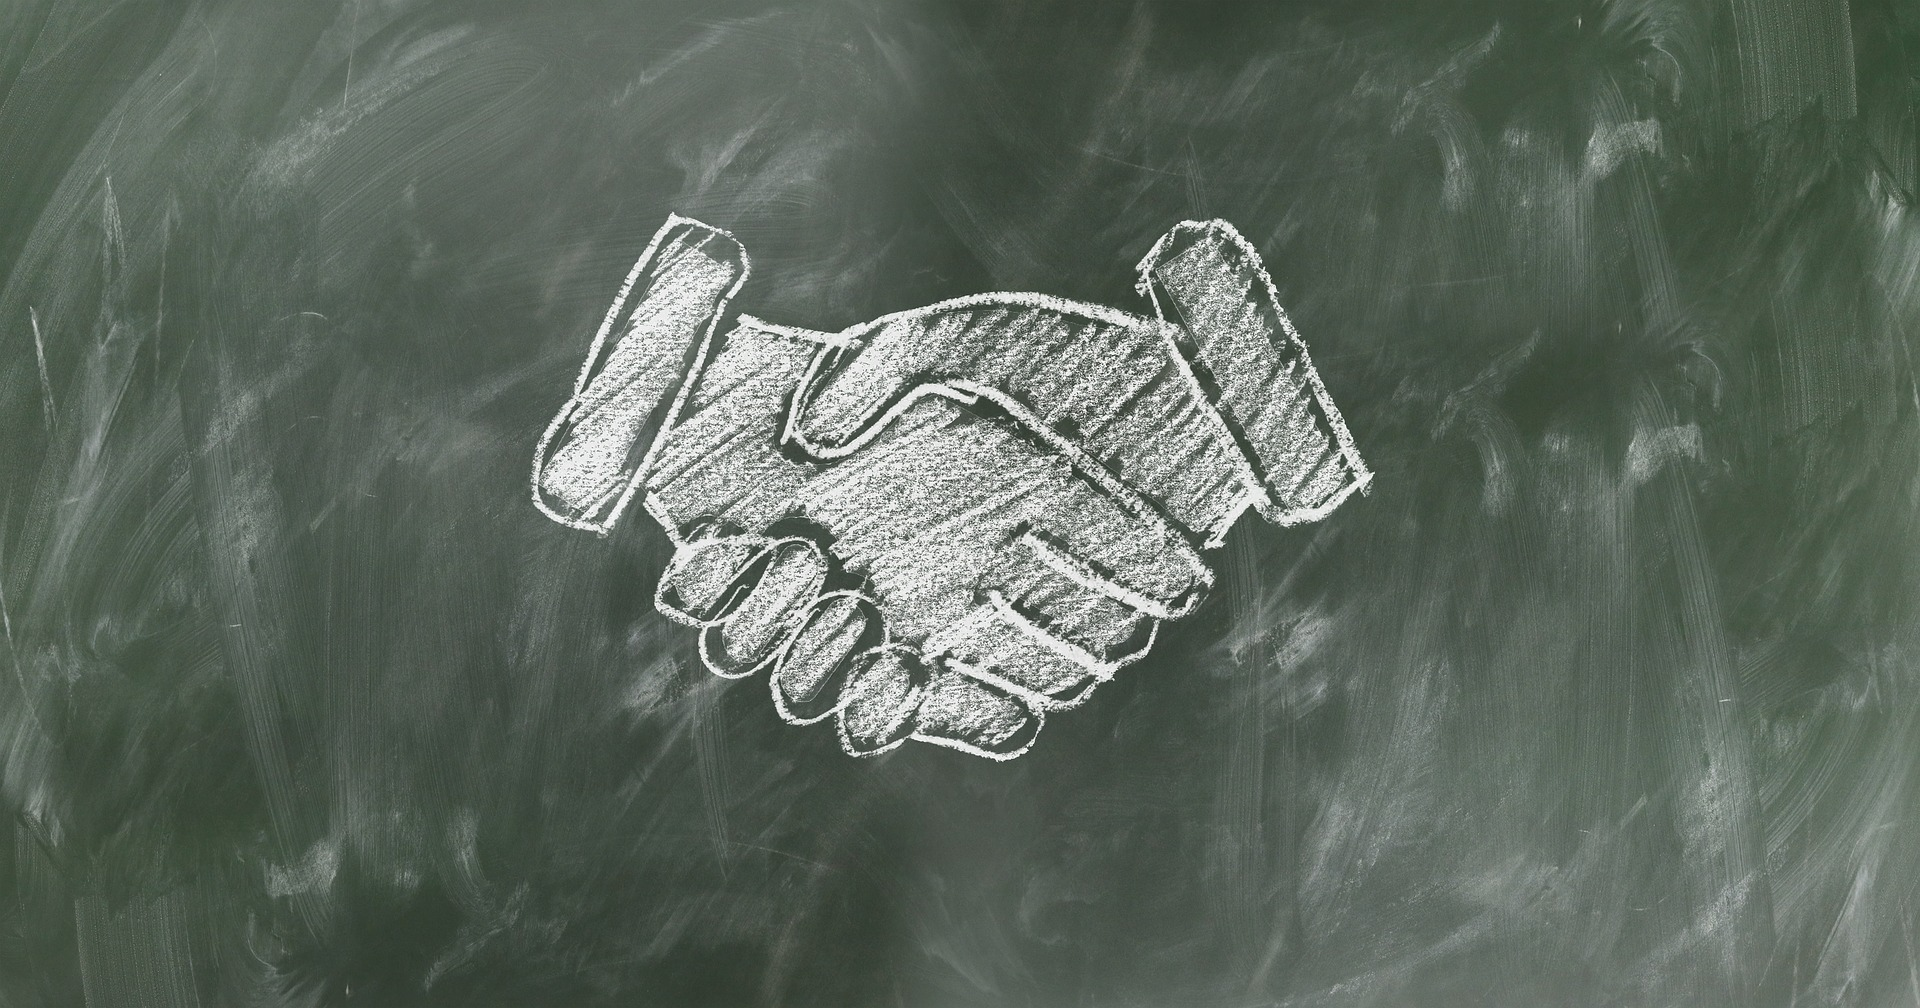 Meeting in person at business networking is vital for generating sales